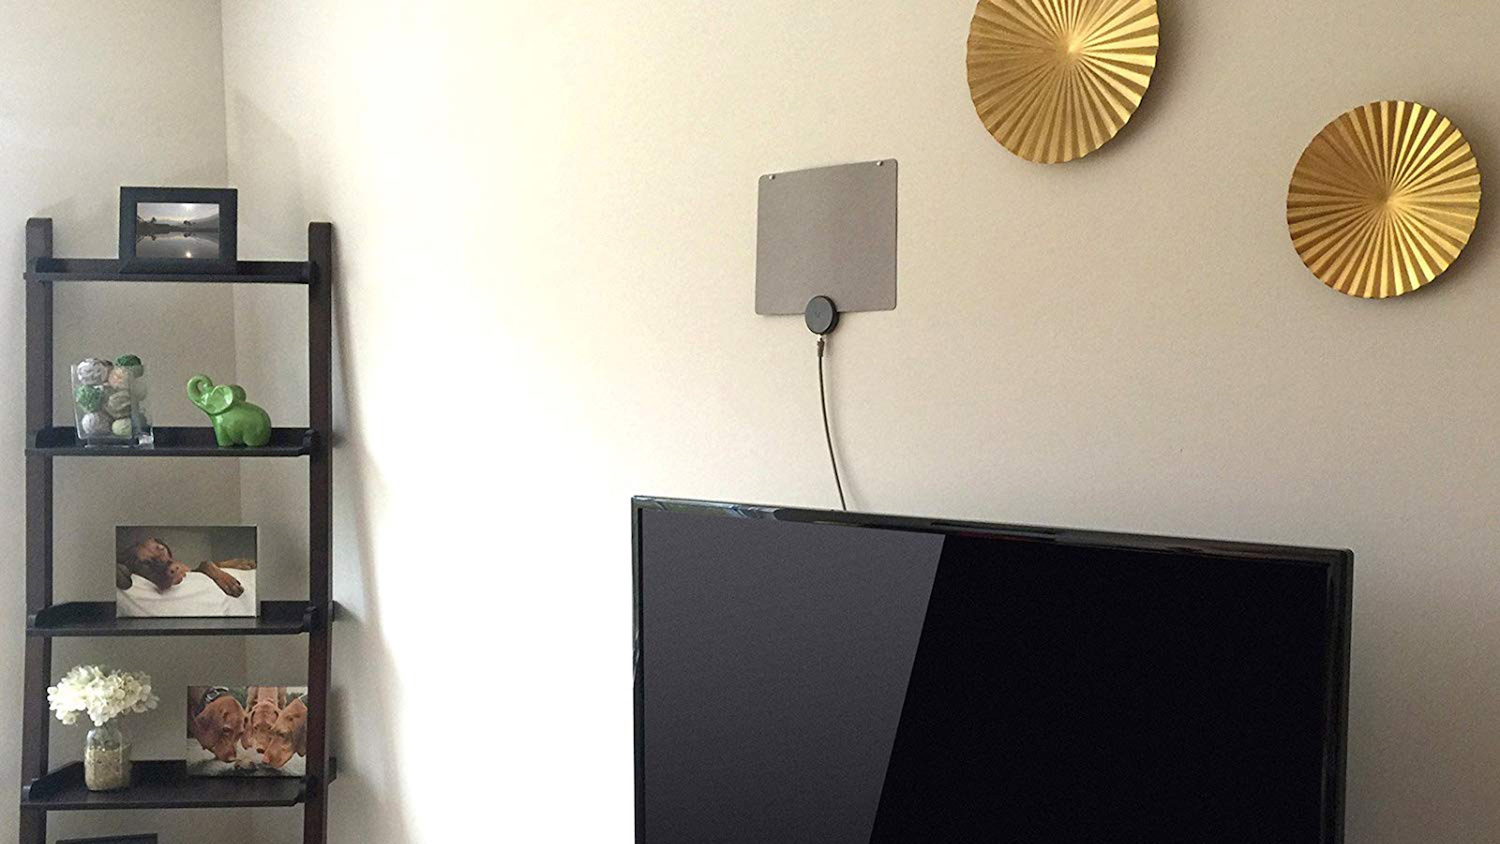 Mohu ReLeaf TV Antenna